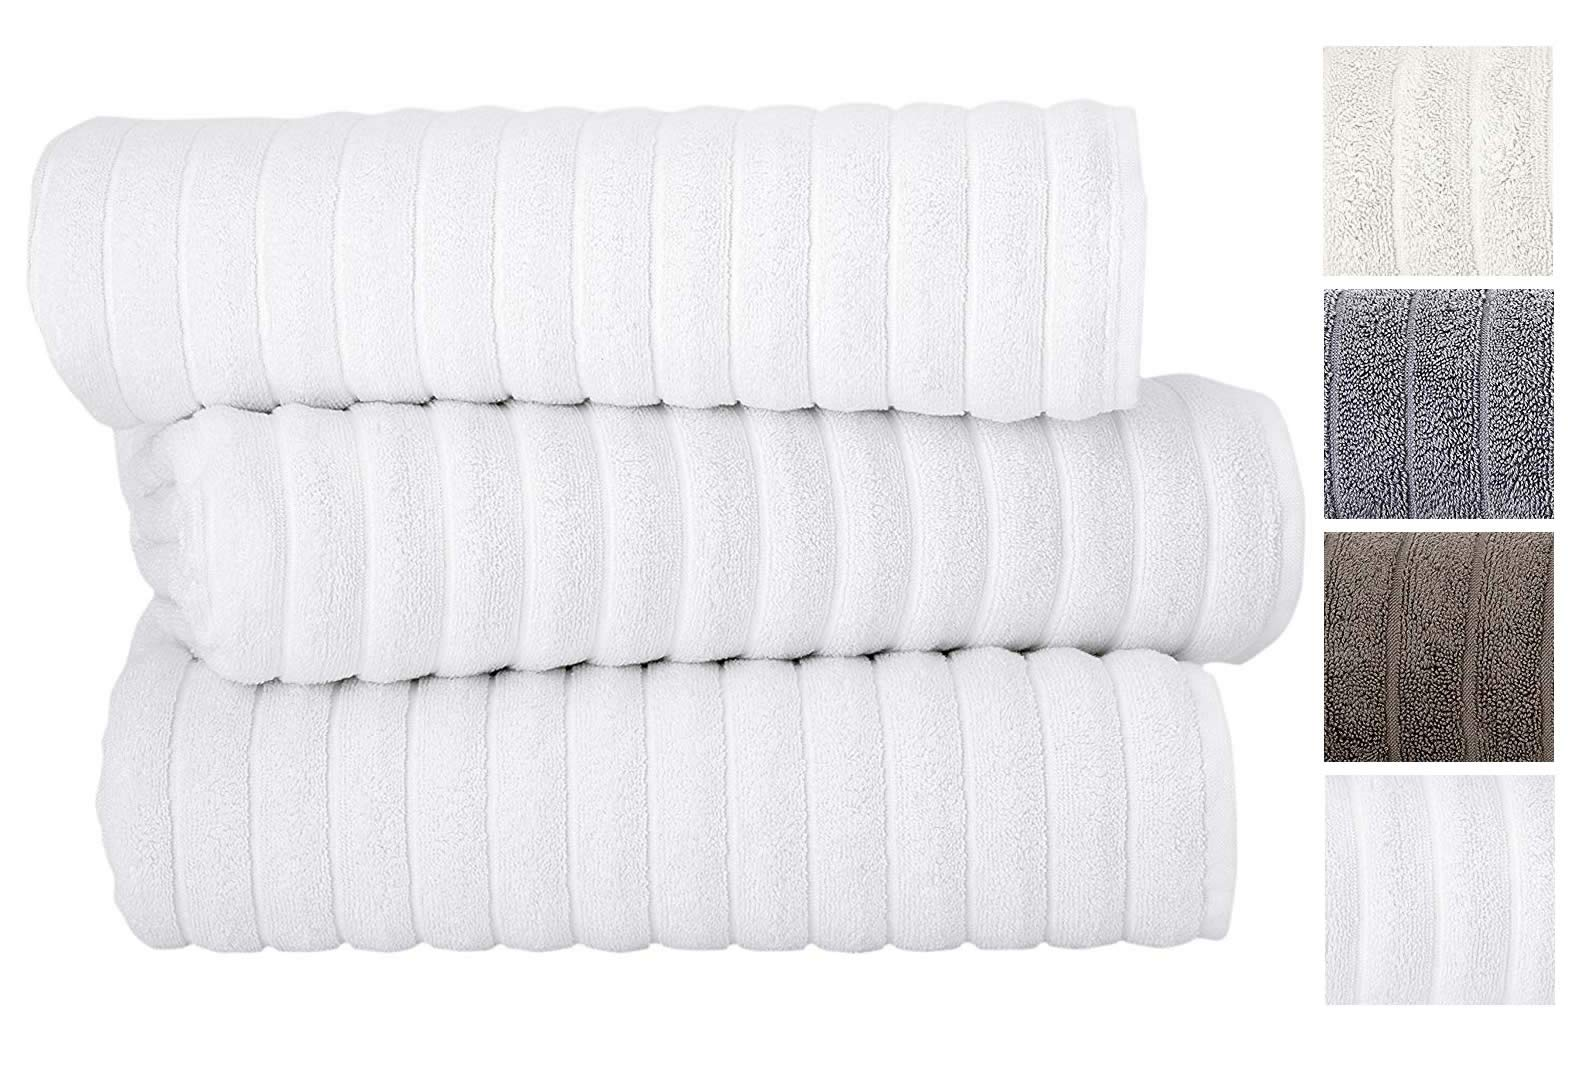 Classic Turkish Towels 3 Piece Luxury Bath Sheet Set - 40 x 65 Inch Soft and Thick Oversized Bathroom Towels Made with 100% Turkish Cotton (White)